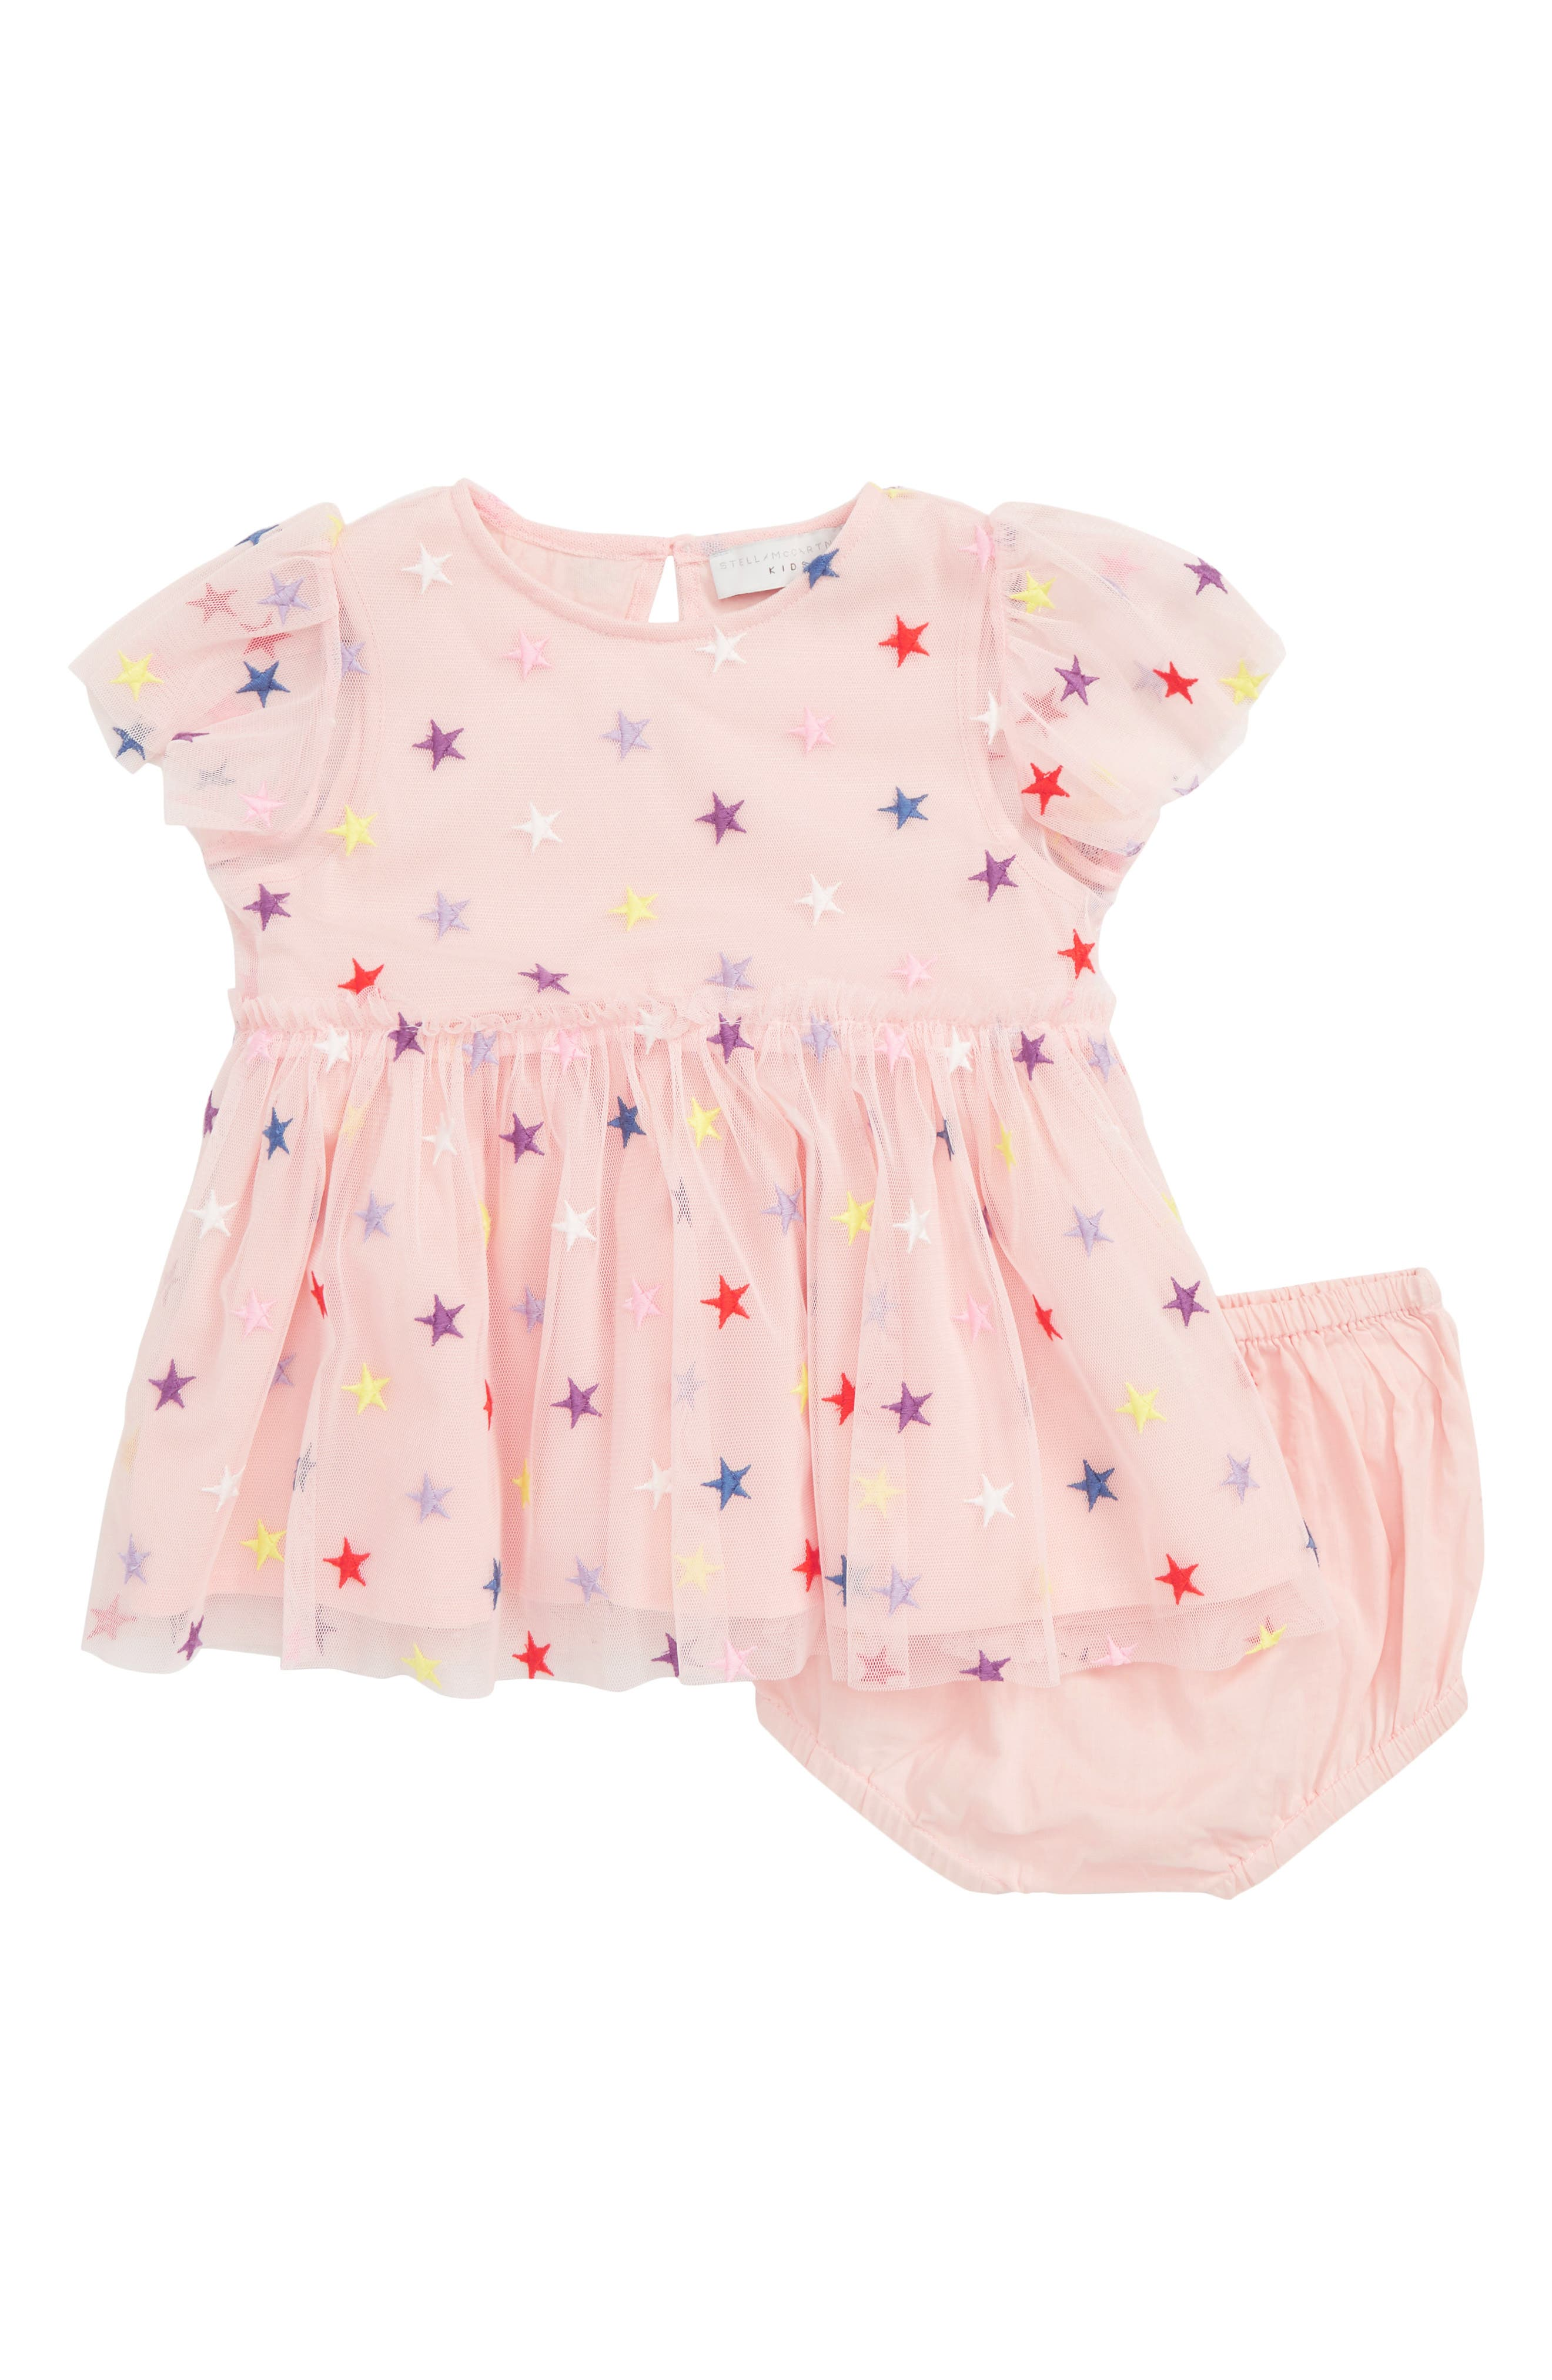 STELLA MCCARTNEY KIDS, Stars Tulle Dress, Main thumbnail 1, color, 6842 PINK